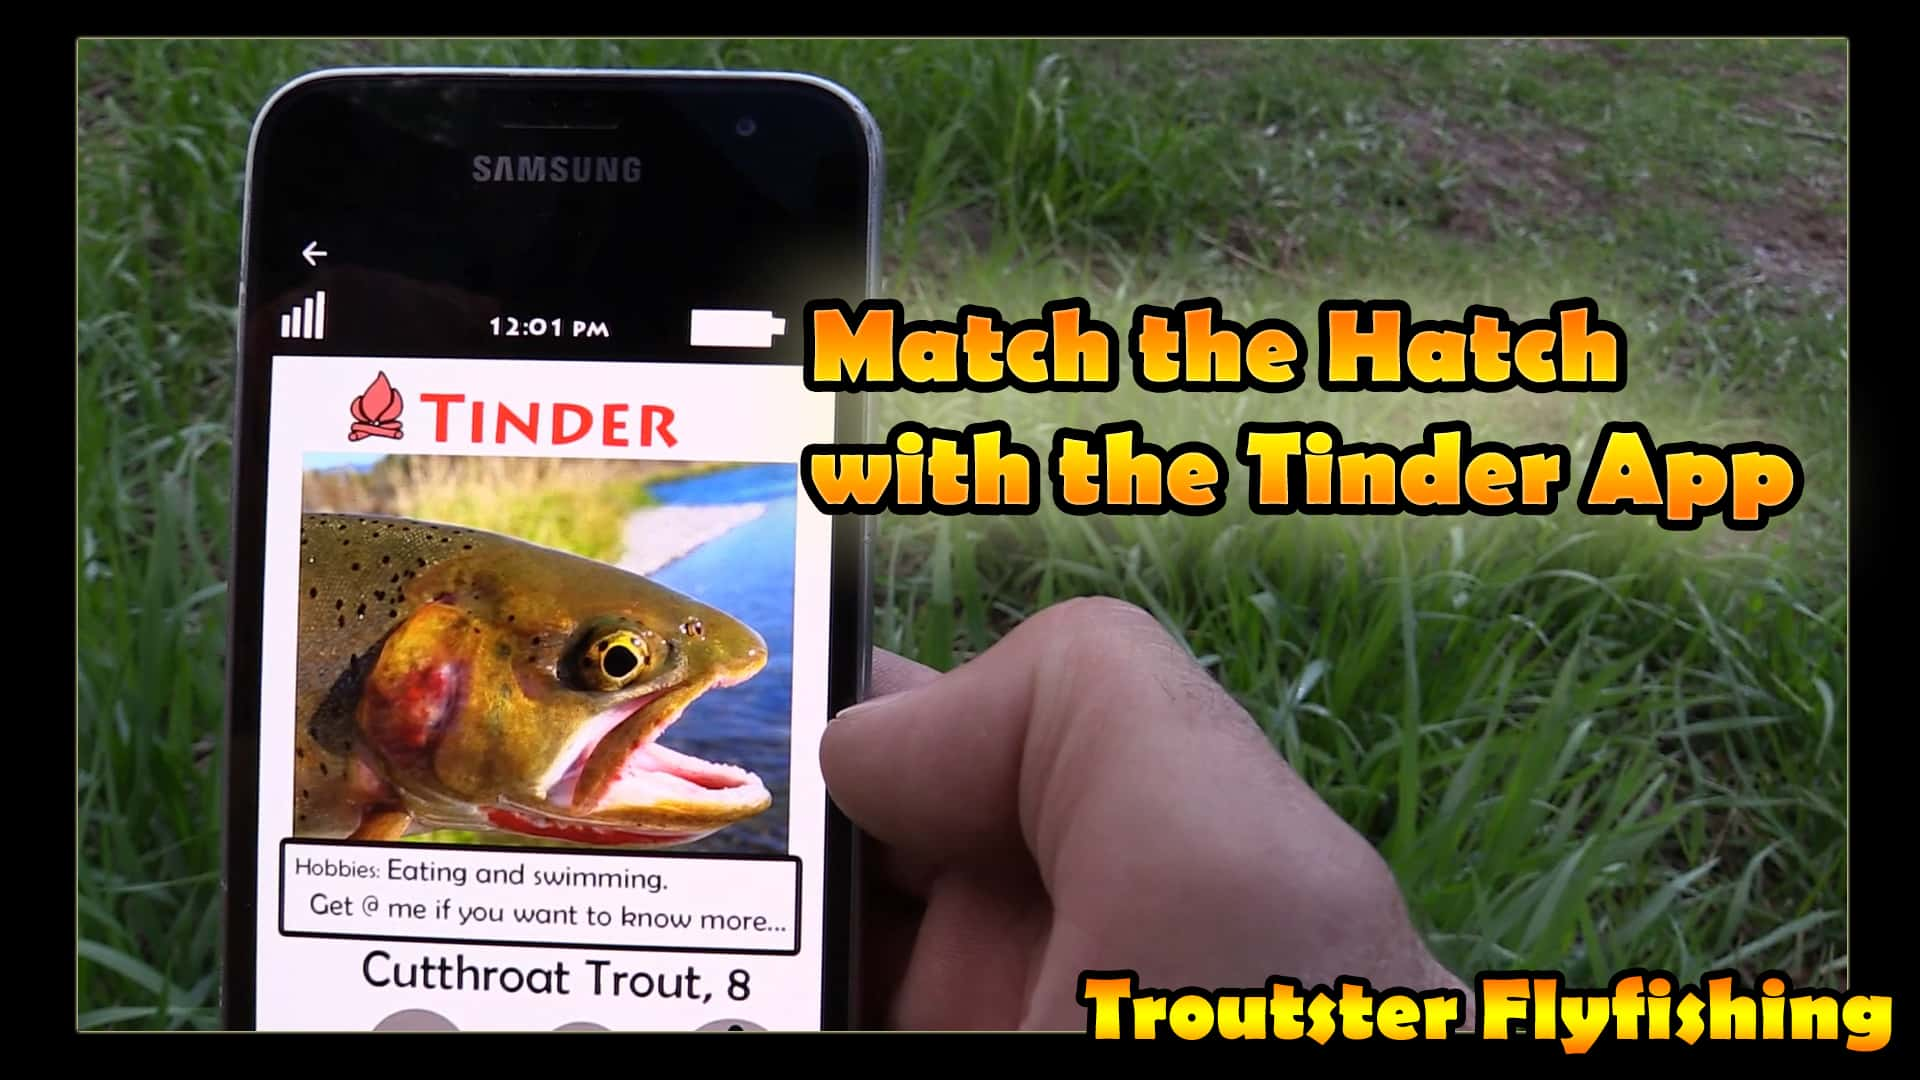 Matching the hatch with tinder flyfishing parody